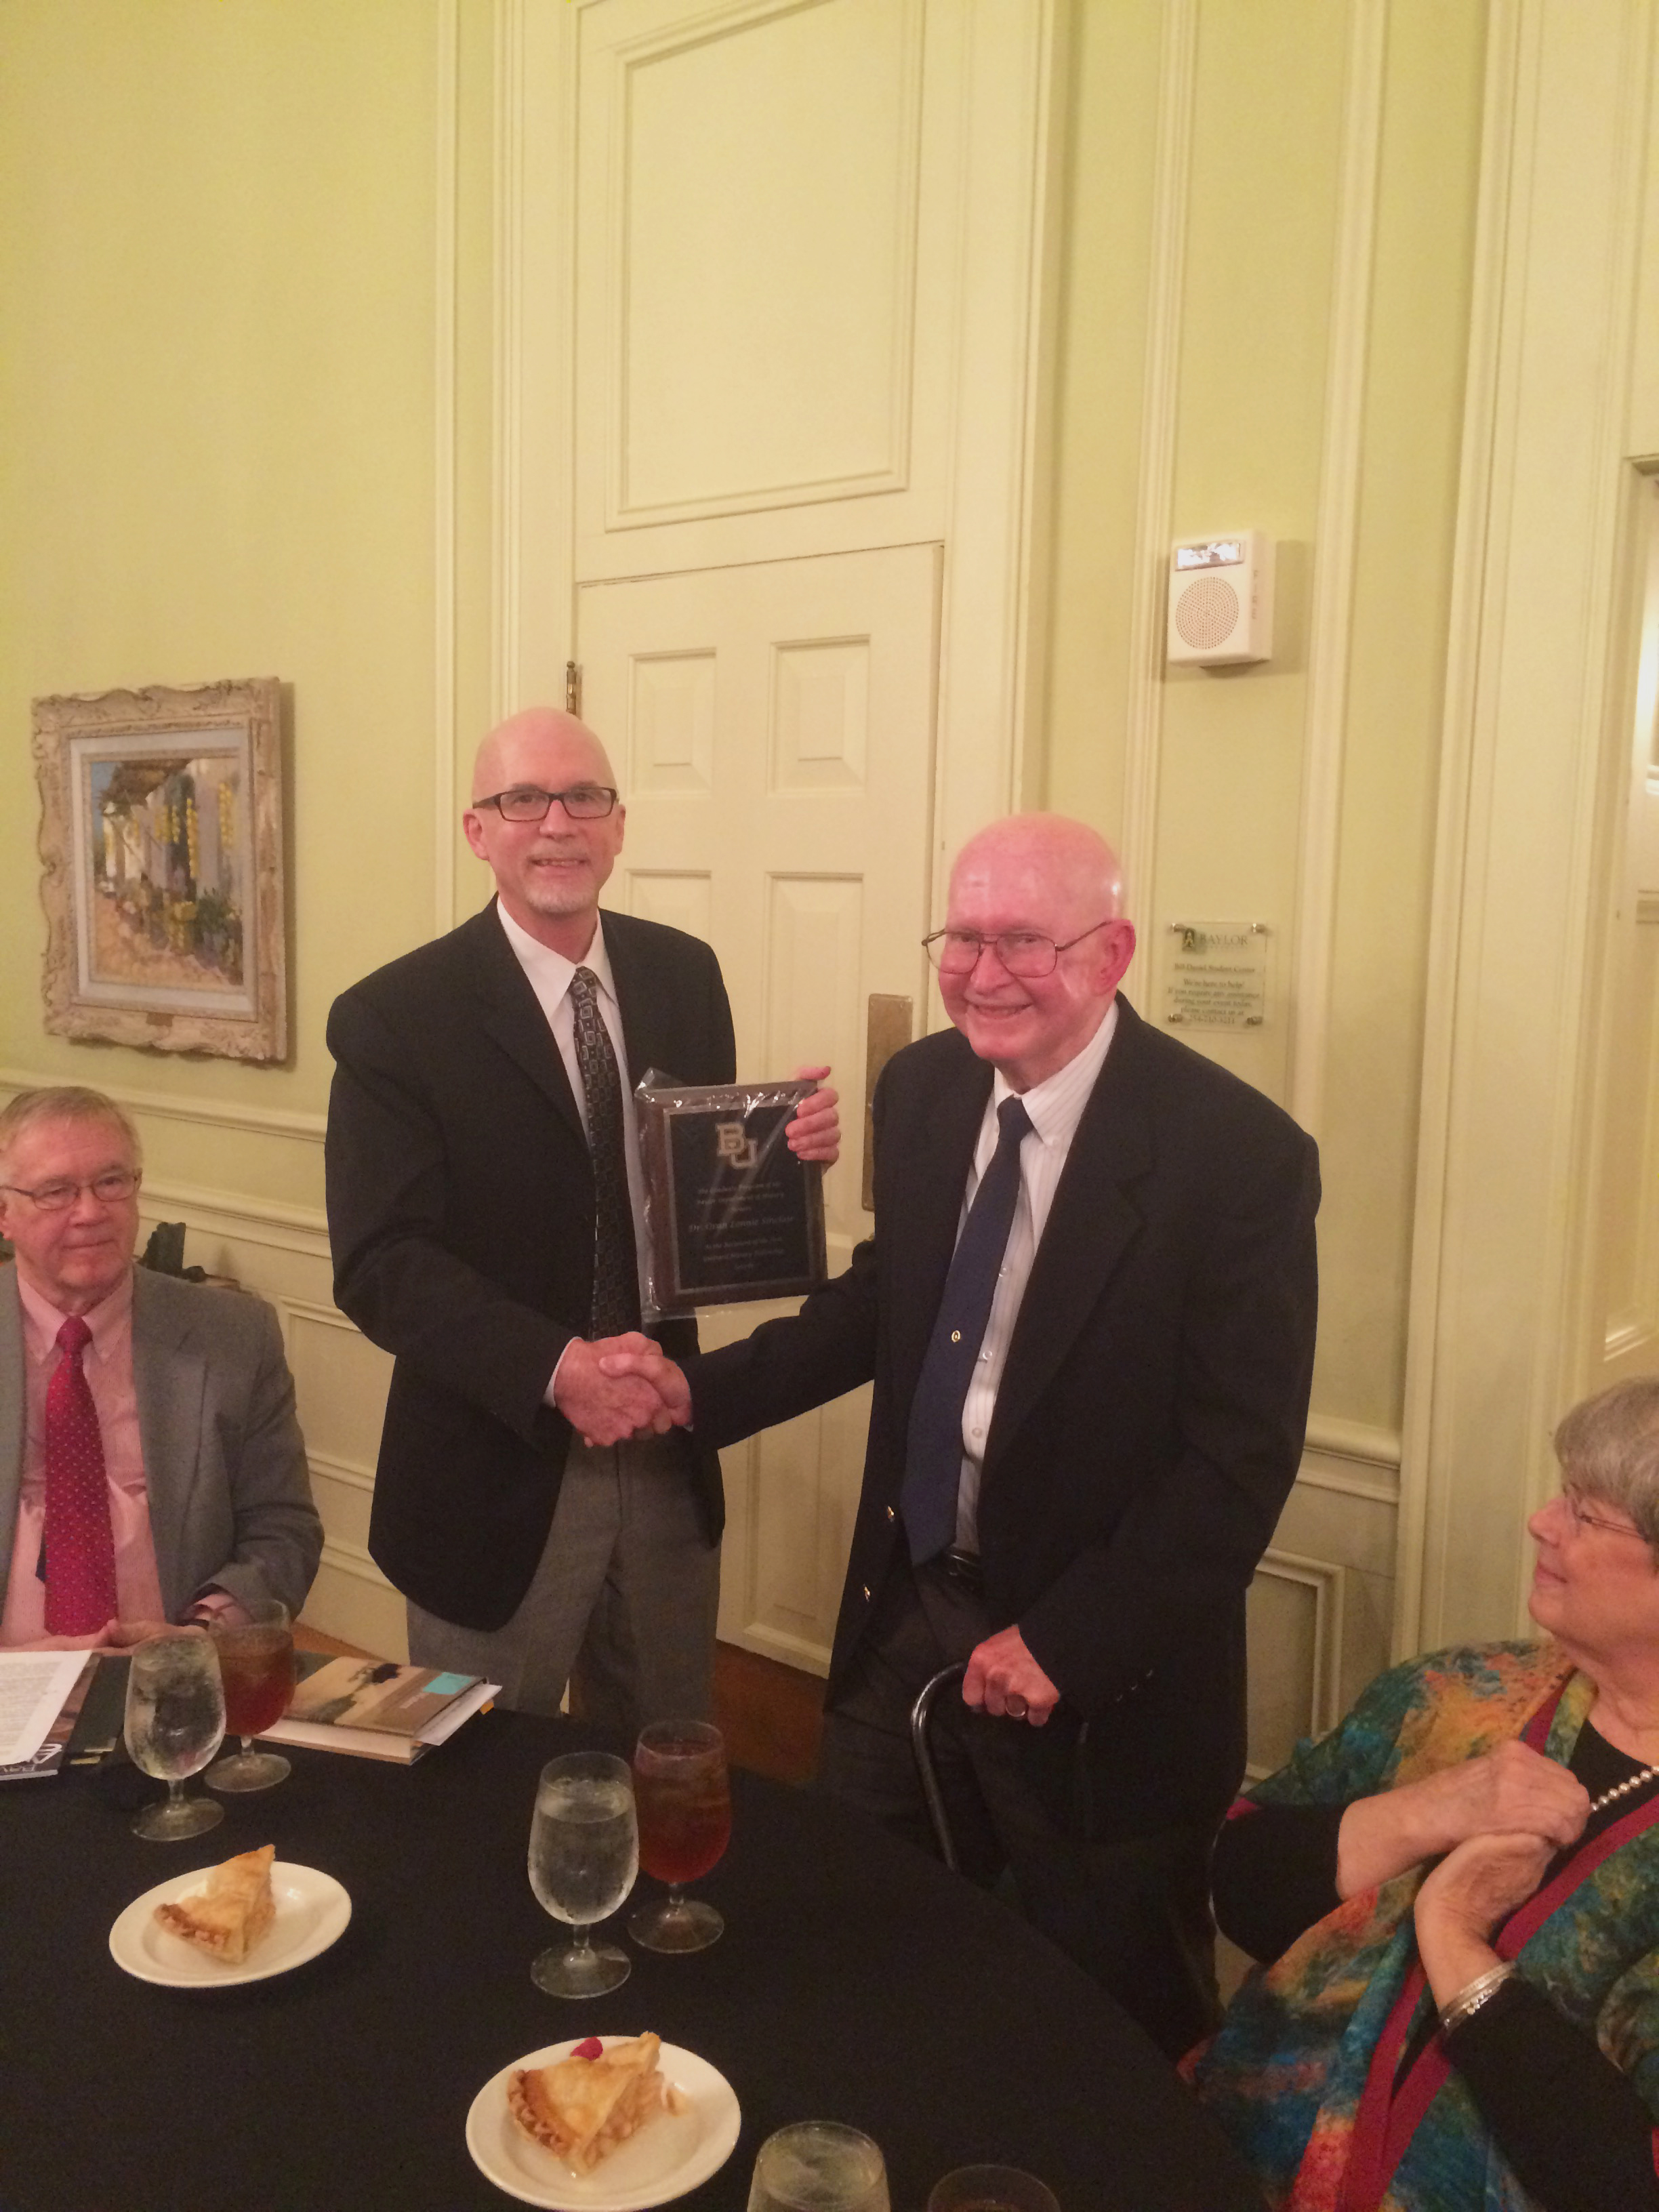 Guittard Dinner 2016 - Dr. Hankins and Dr. Sinclair